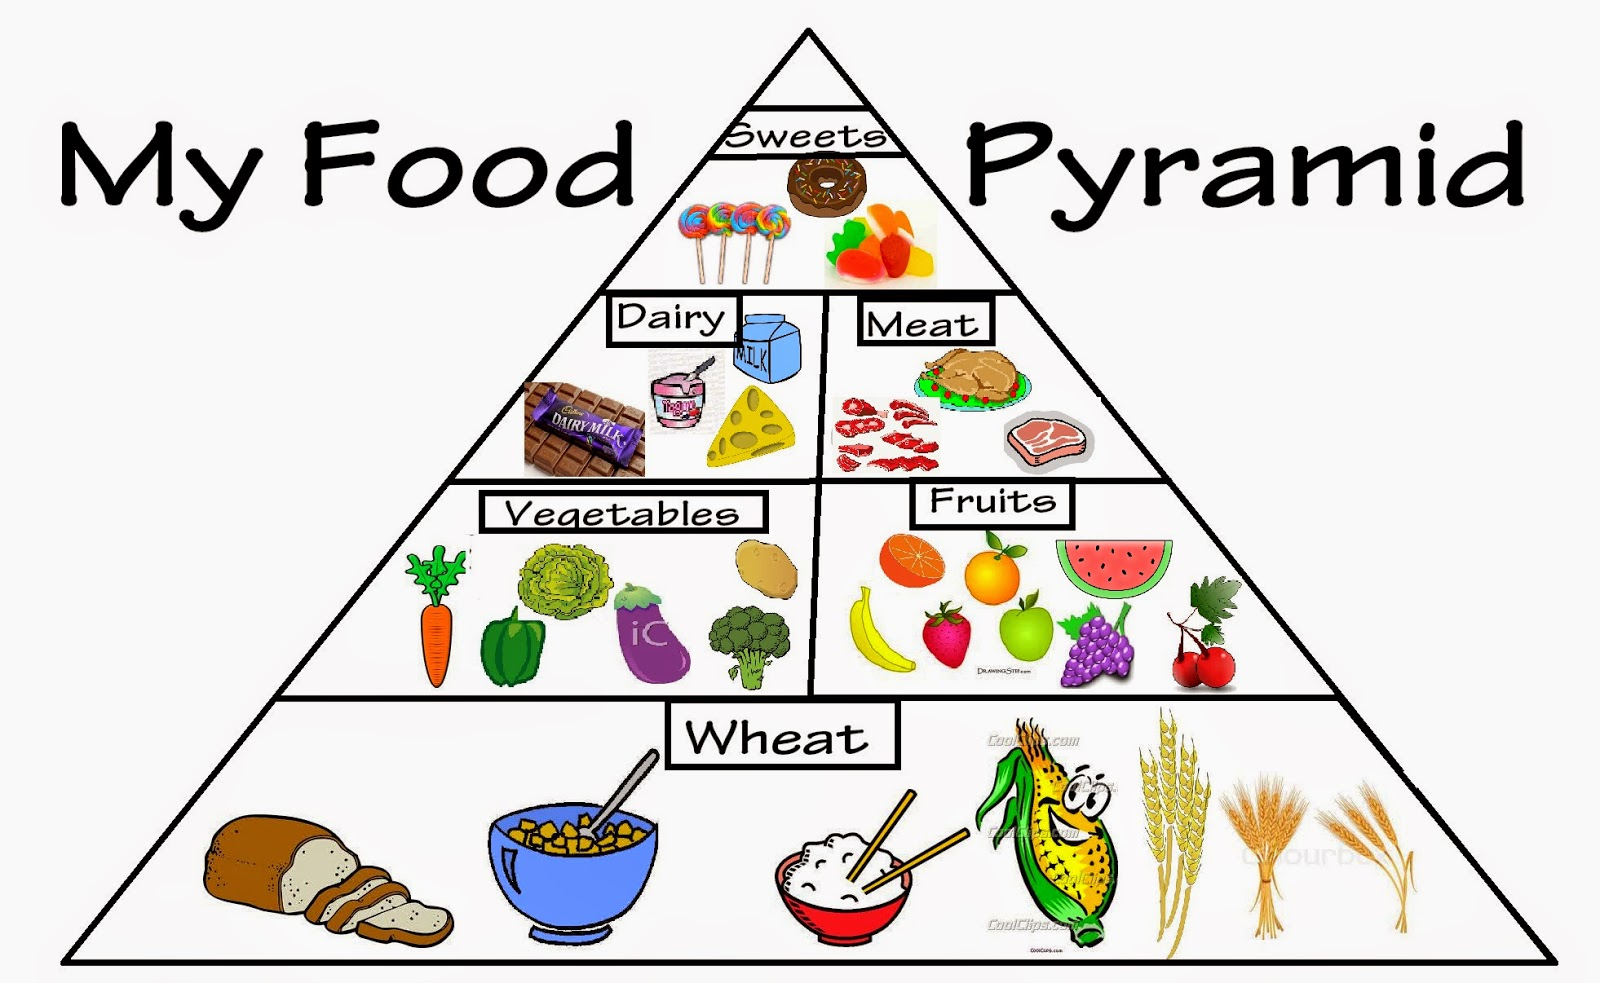 Pyramid Saimira - Wikipedia Pictures of the food pyrimid